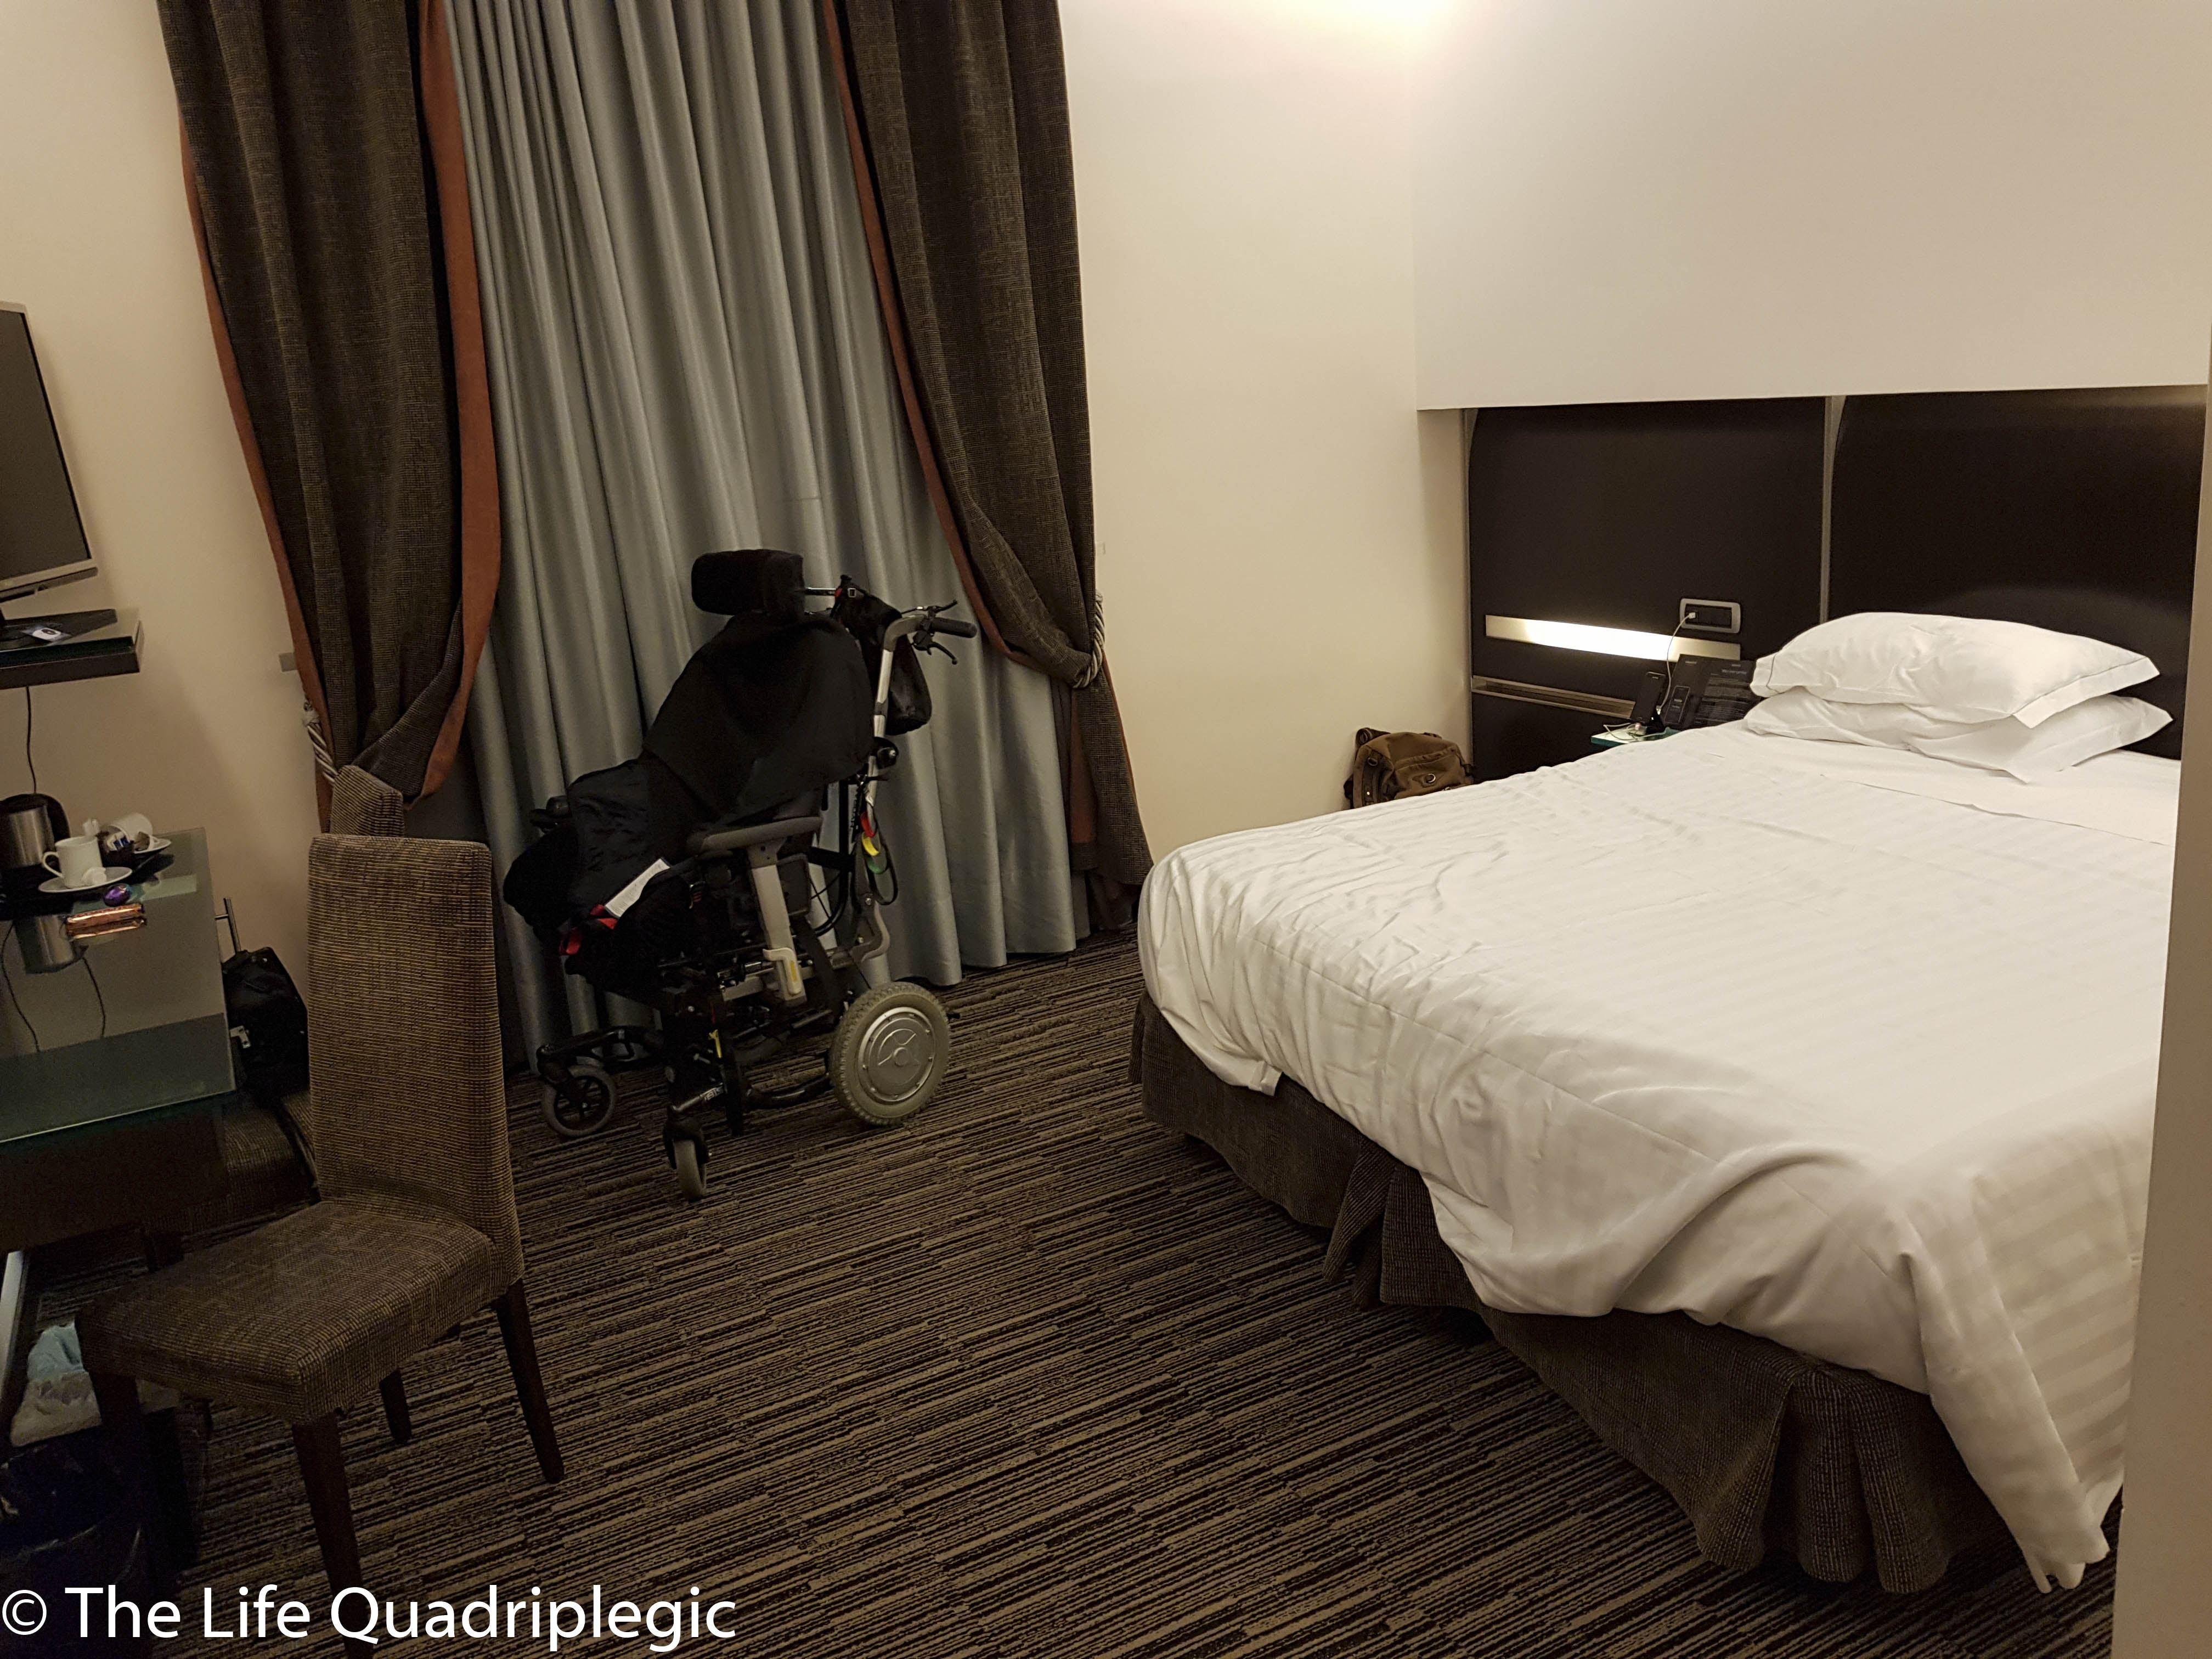 A hotel room with a double bed and a wheelchair next to the bed